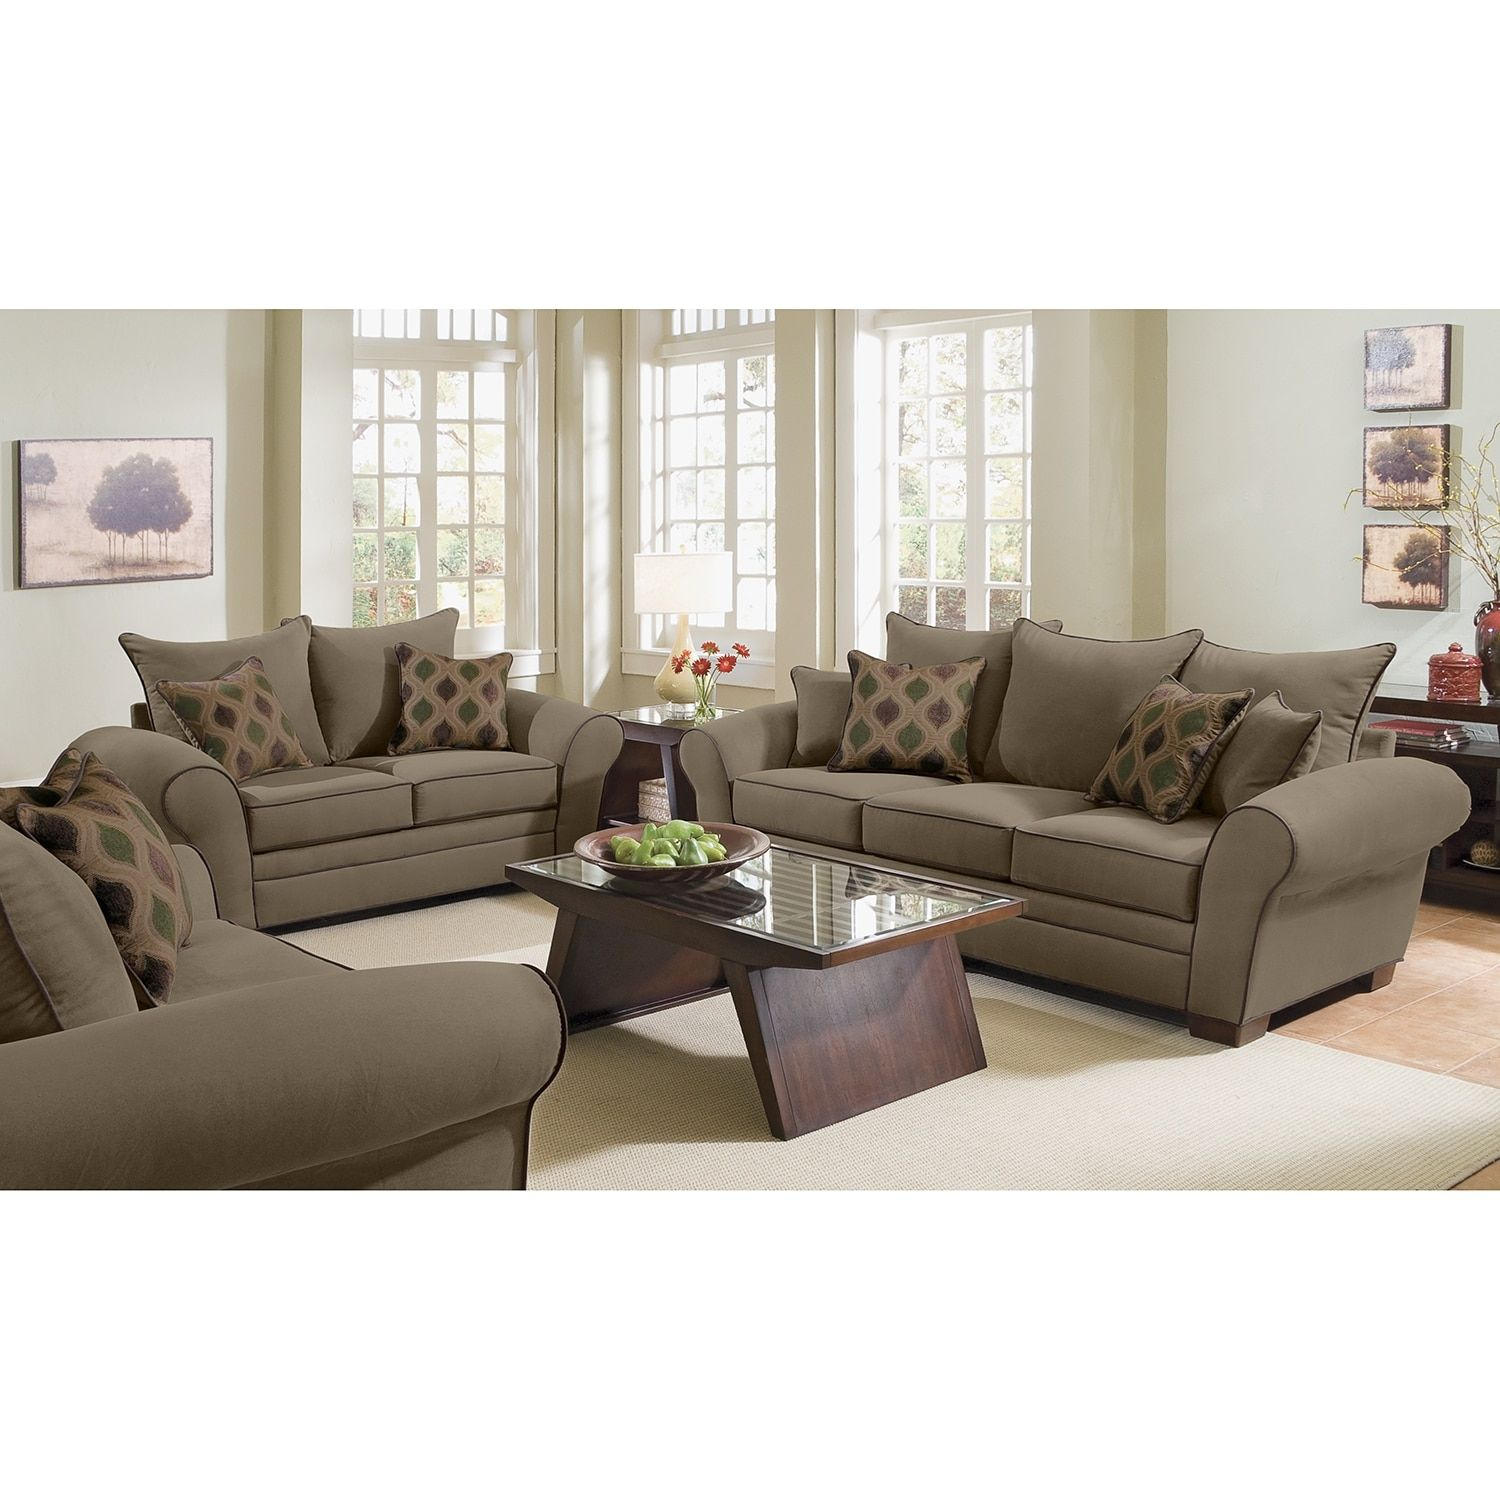 Rendezvous Sofa And Loveseat Set Olive White Furniture Living